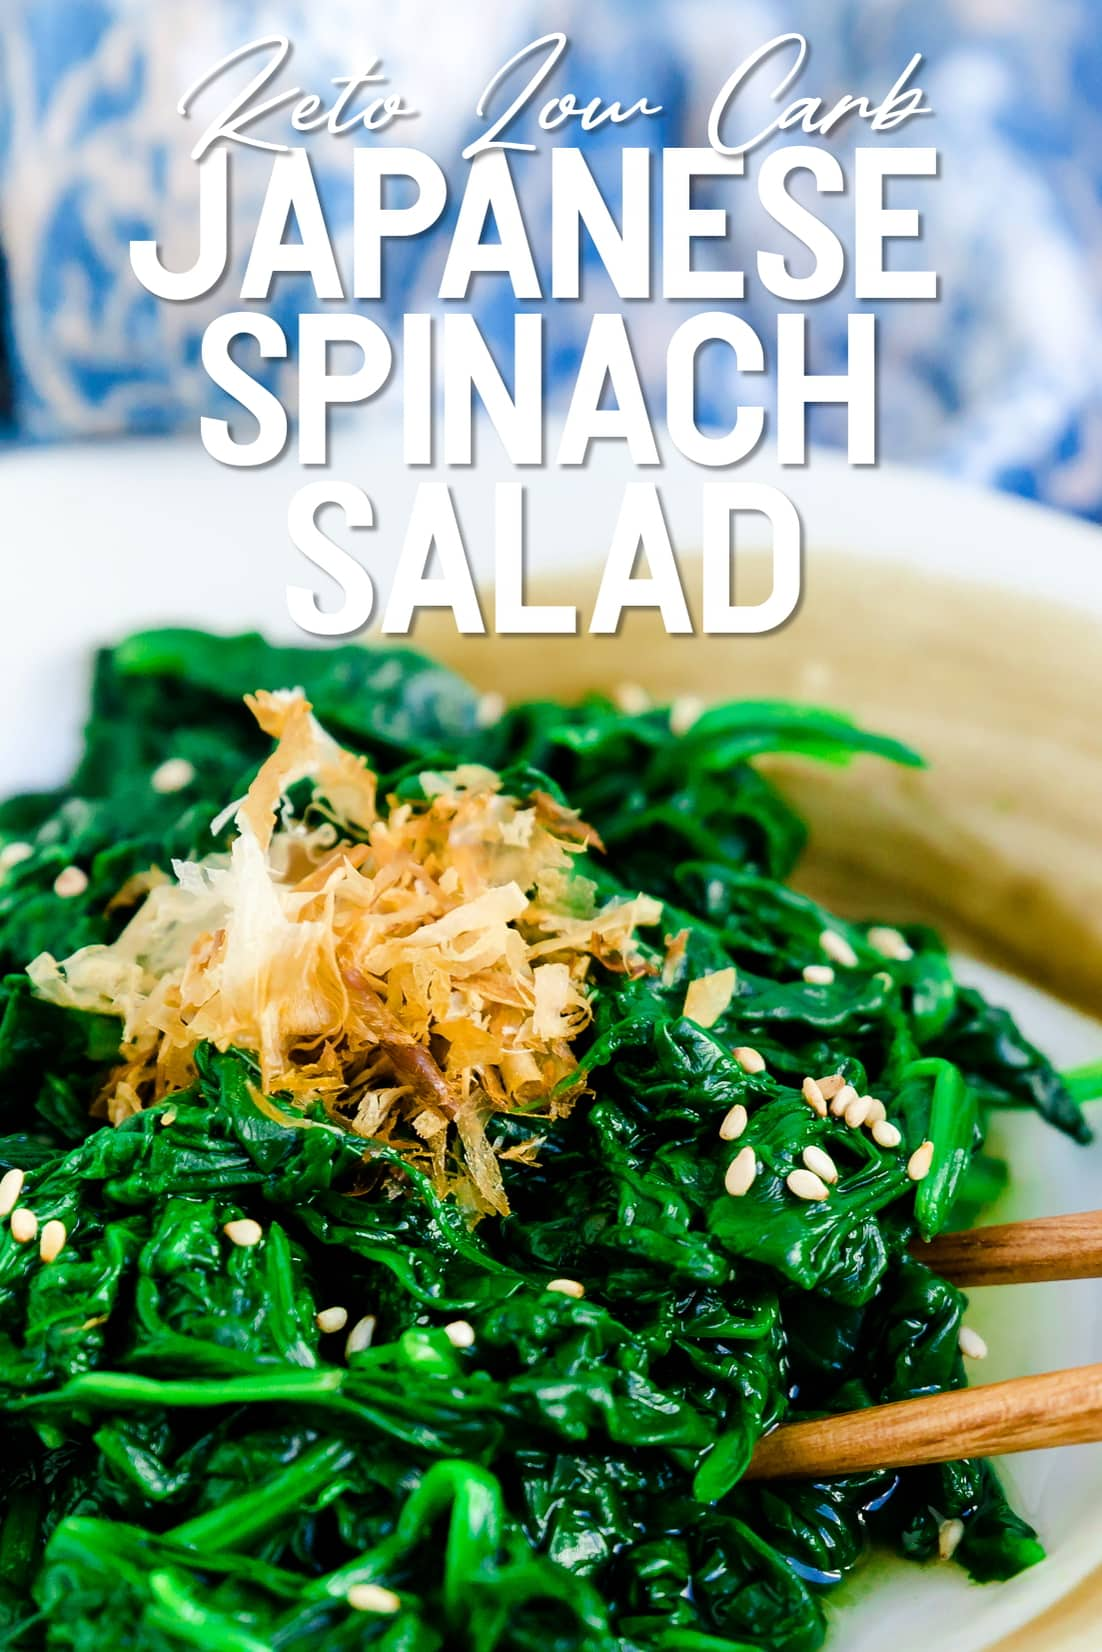 Japanese Spinach Salad with chopsticks